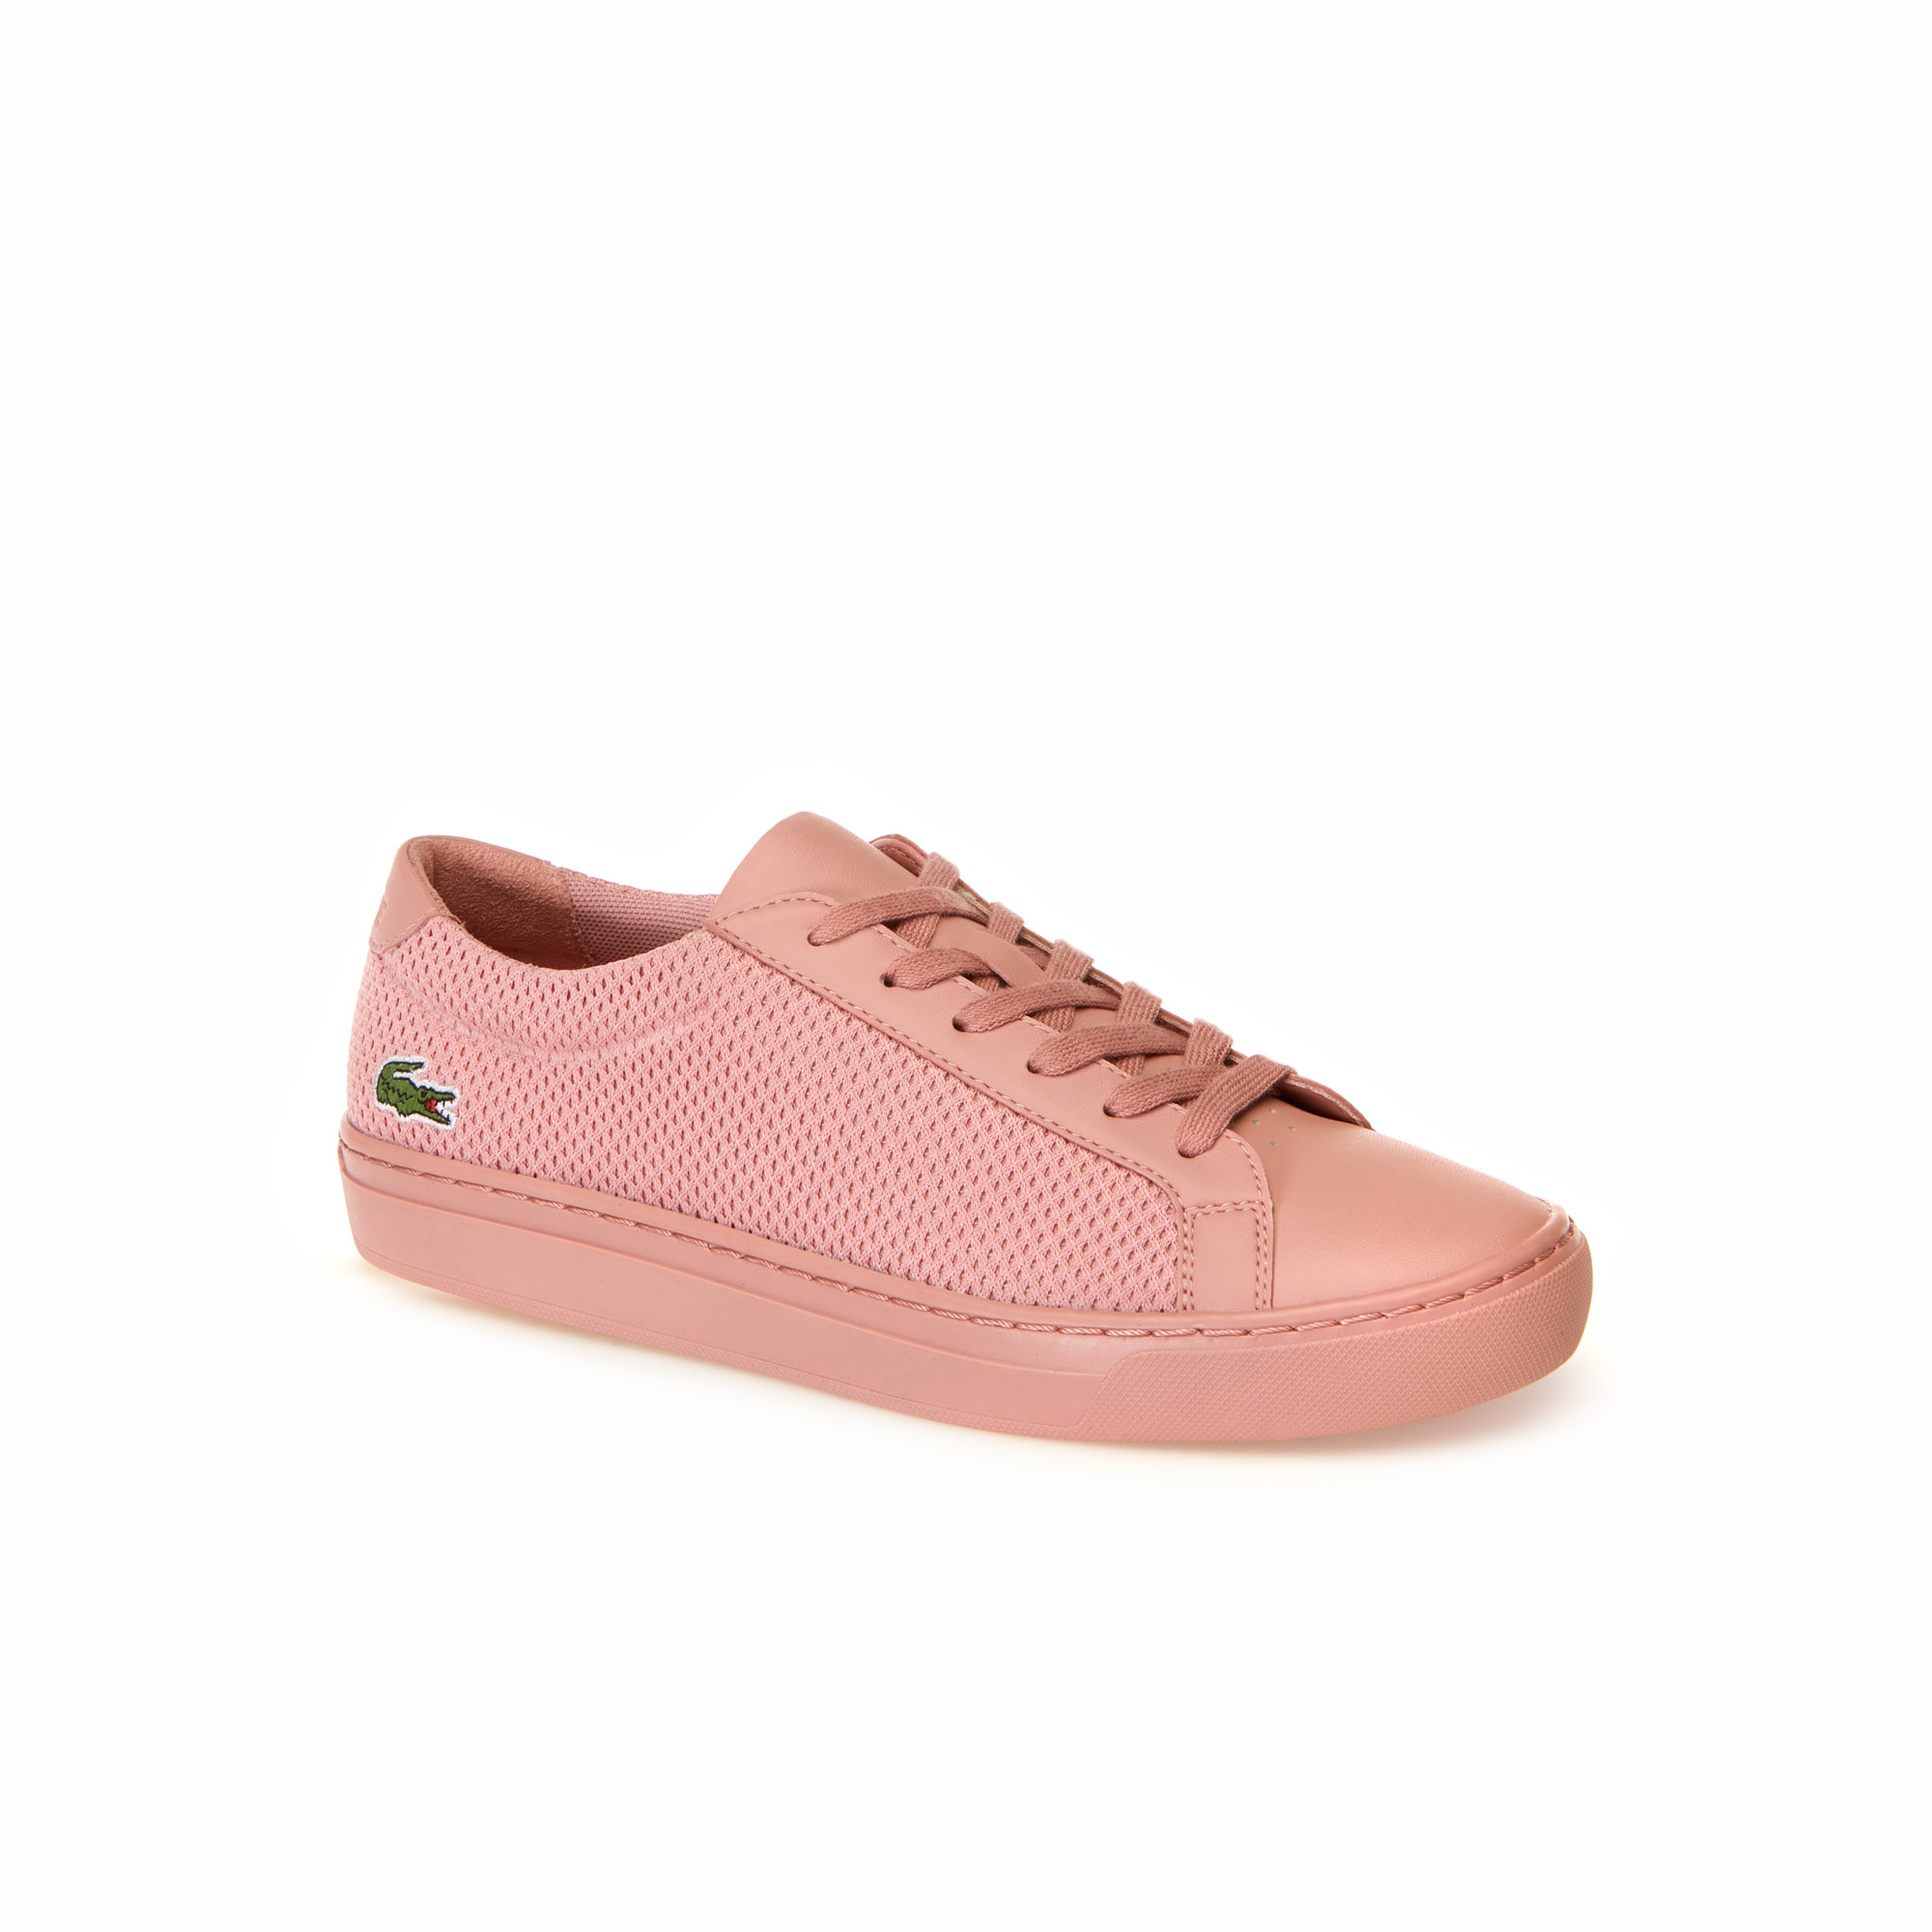 Damen L.12.12 Sneakers LIGHT-WT aus Textil und Leder